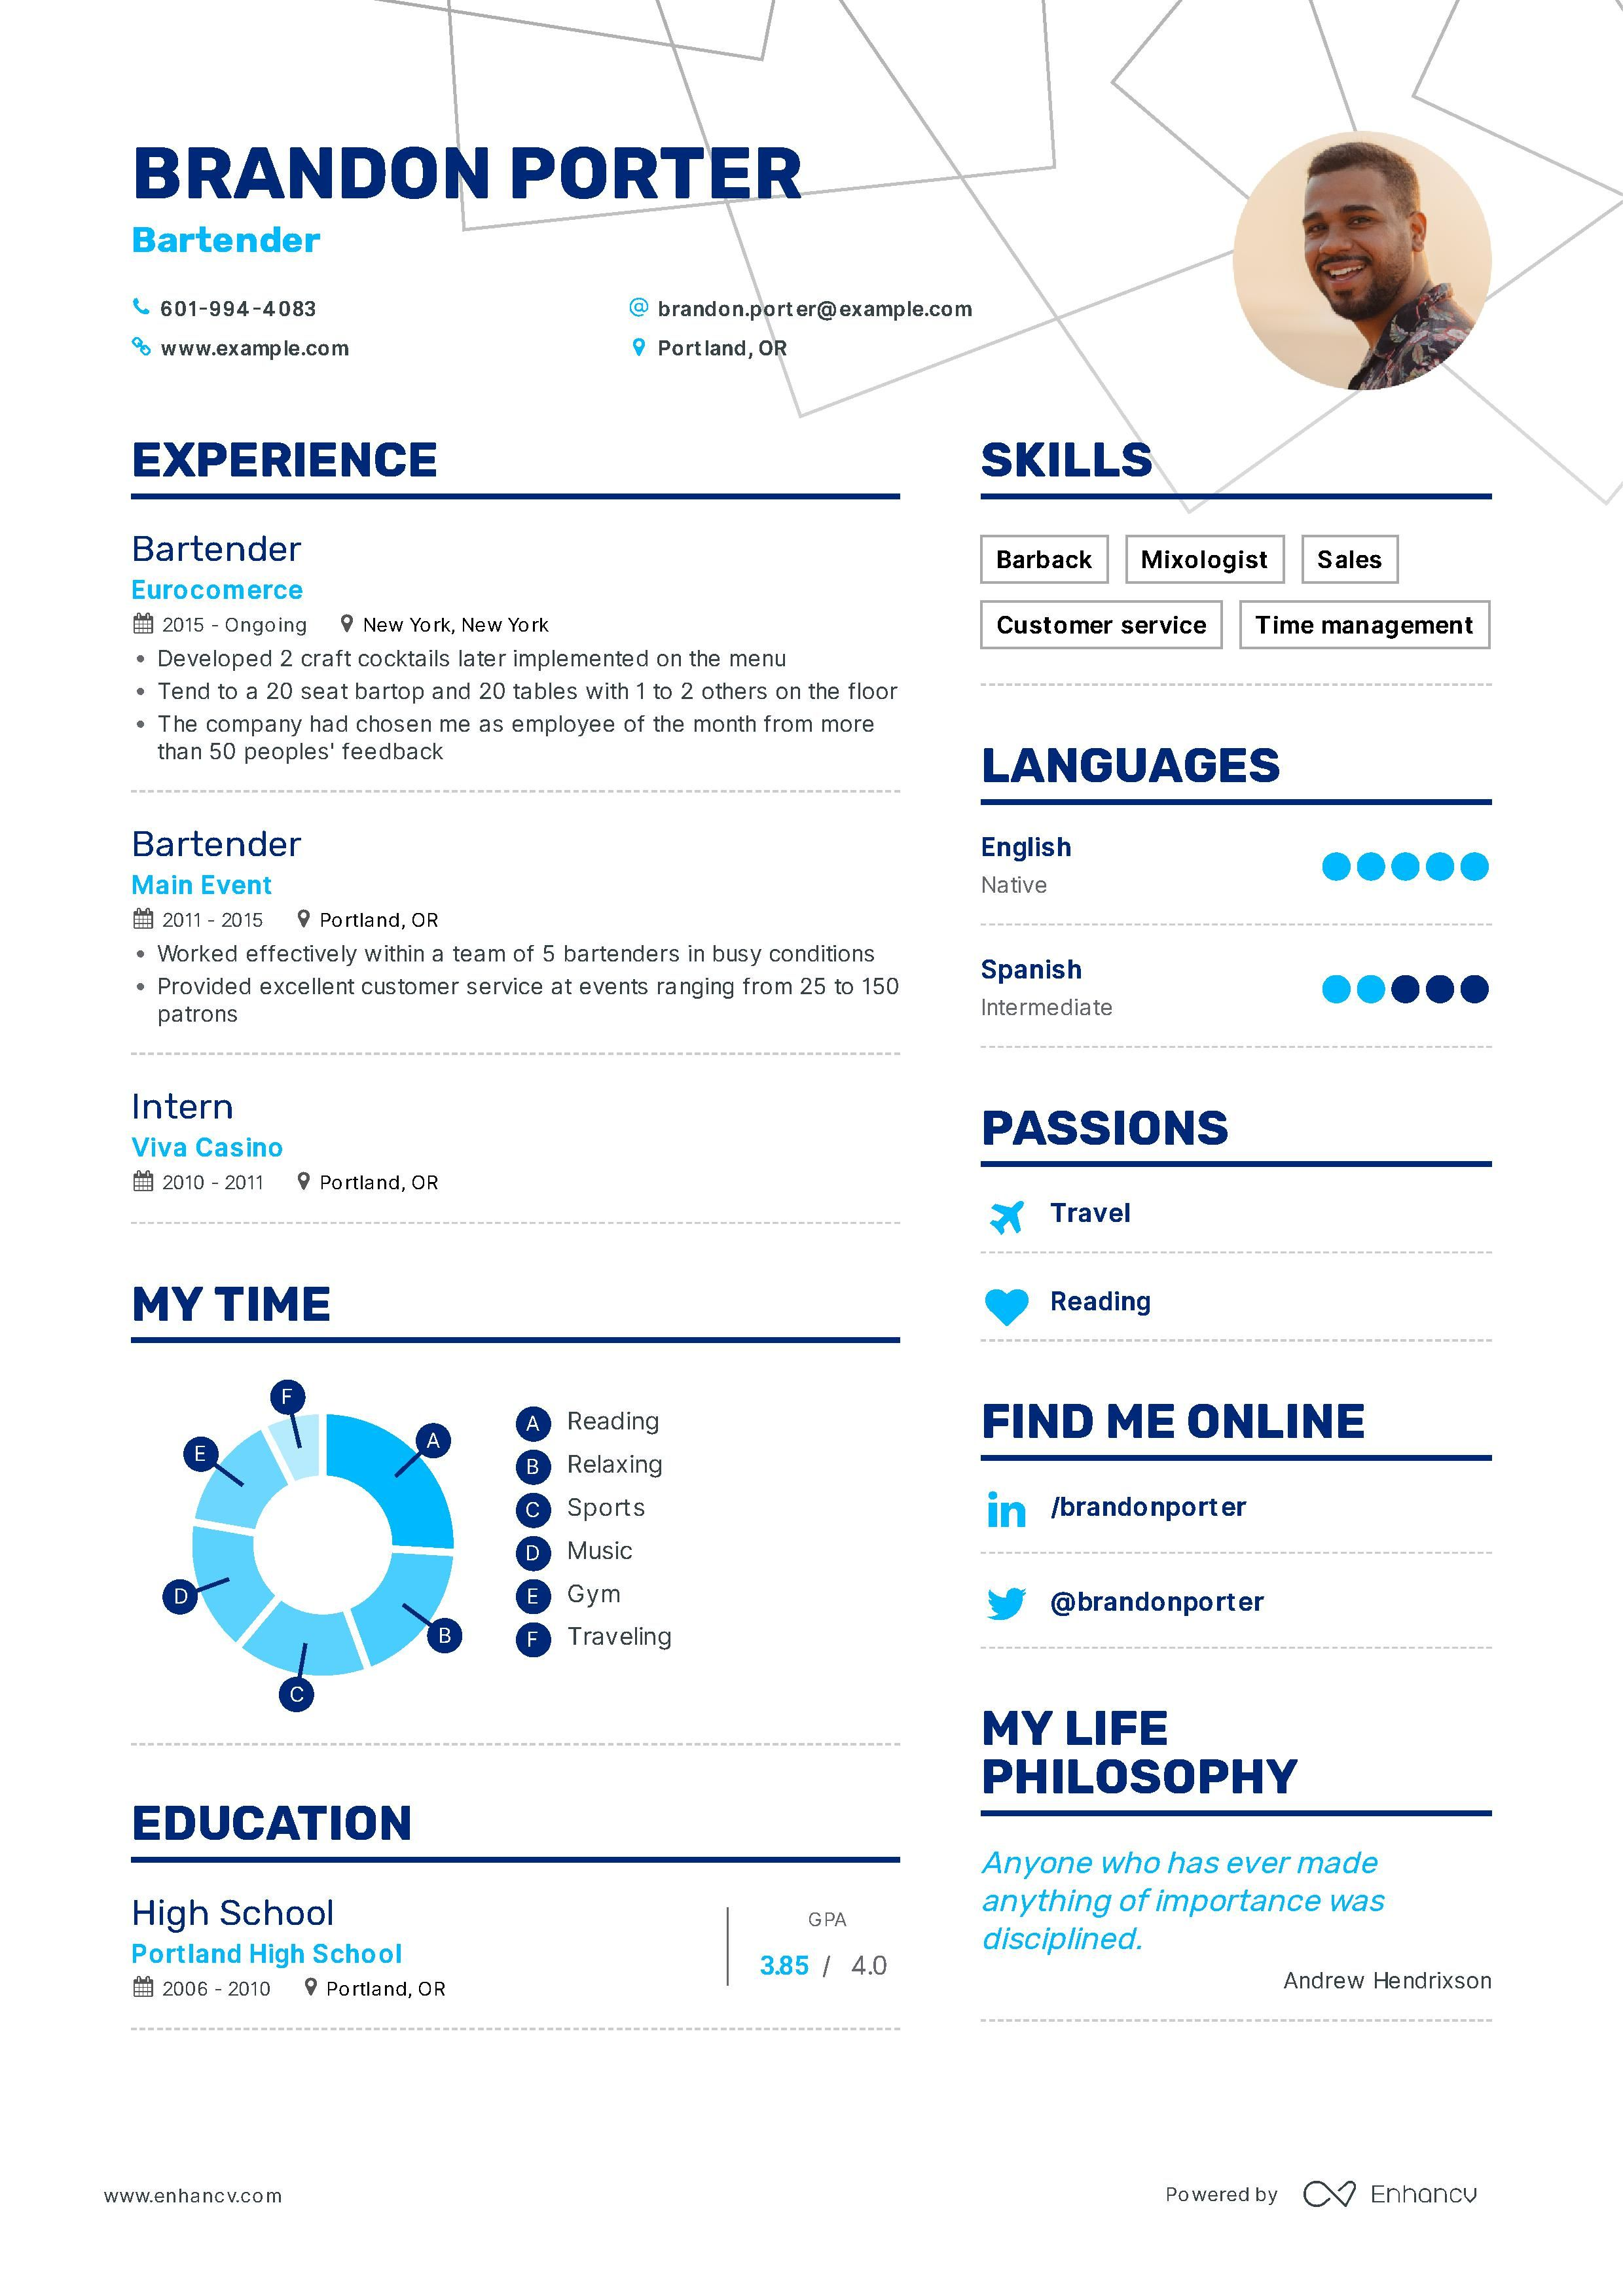 Bartender resume examples expert advice with images